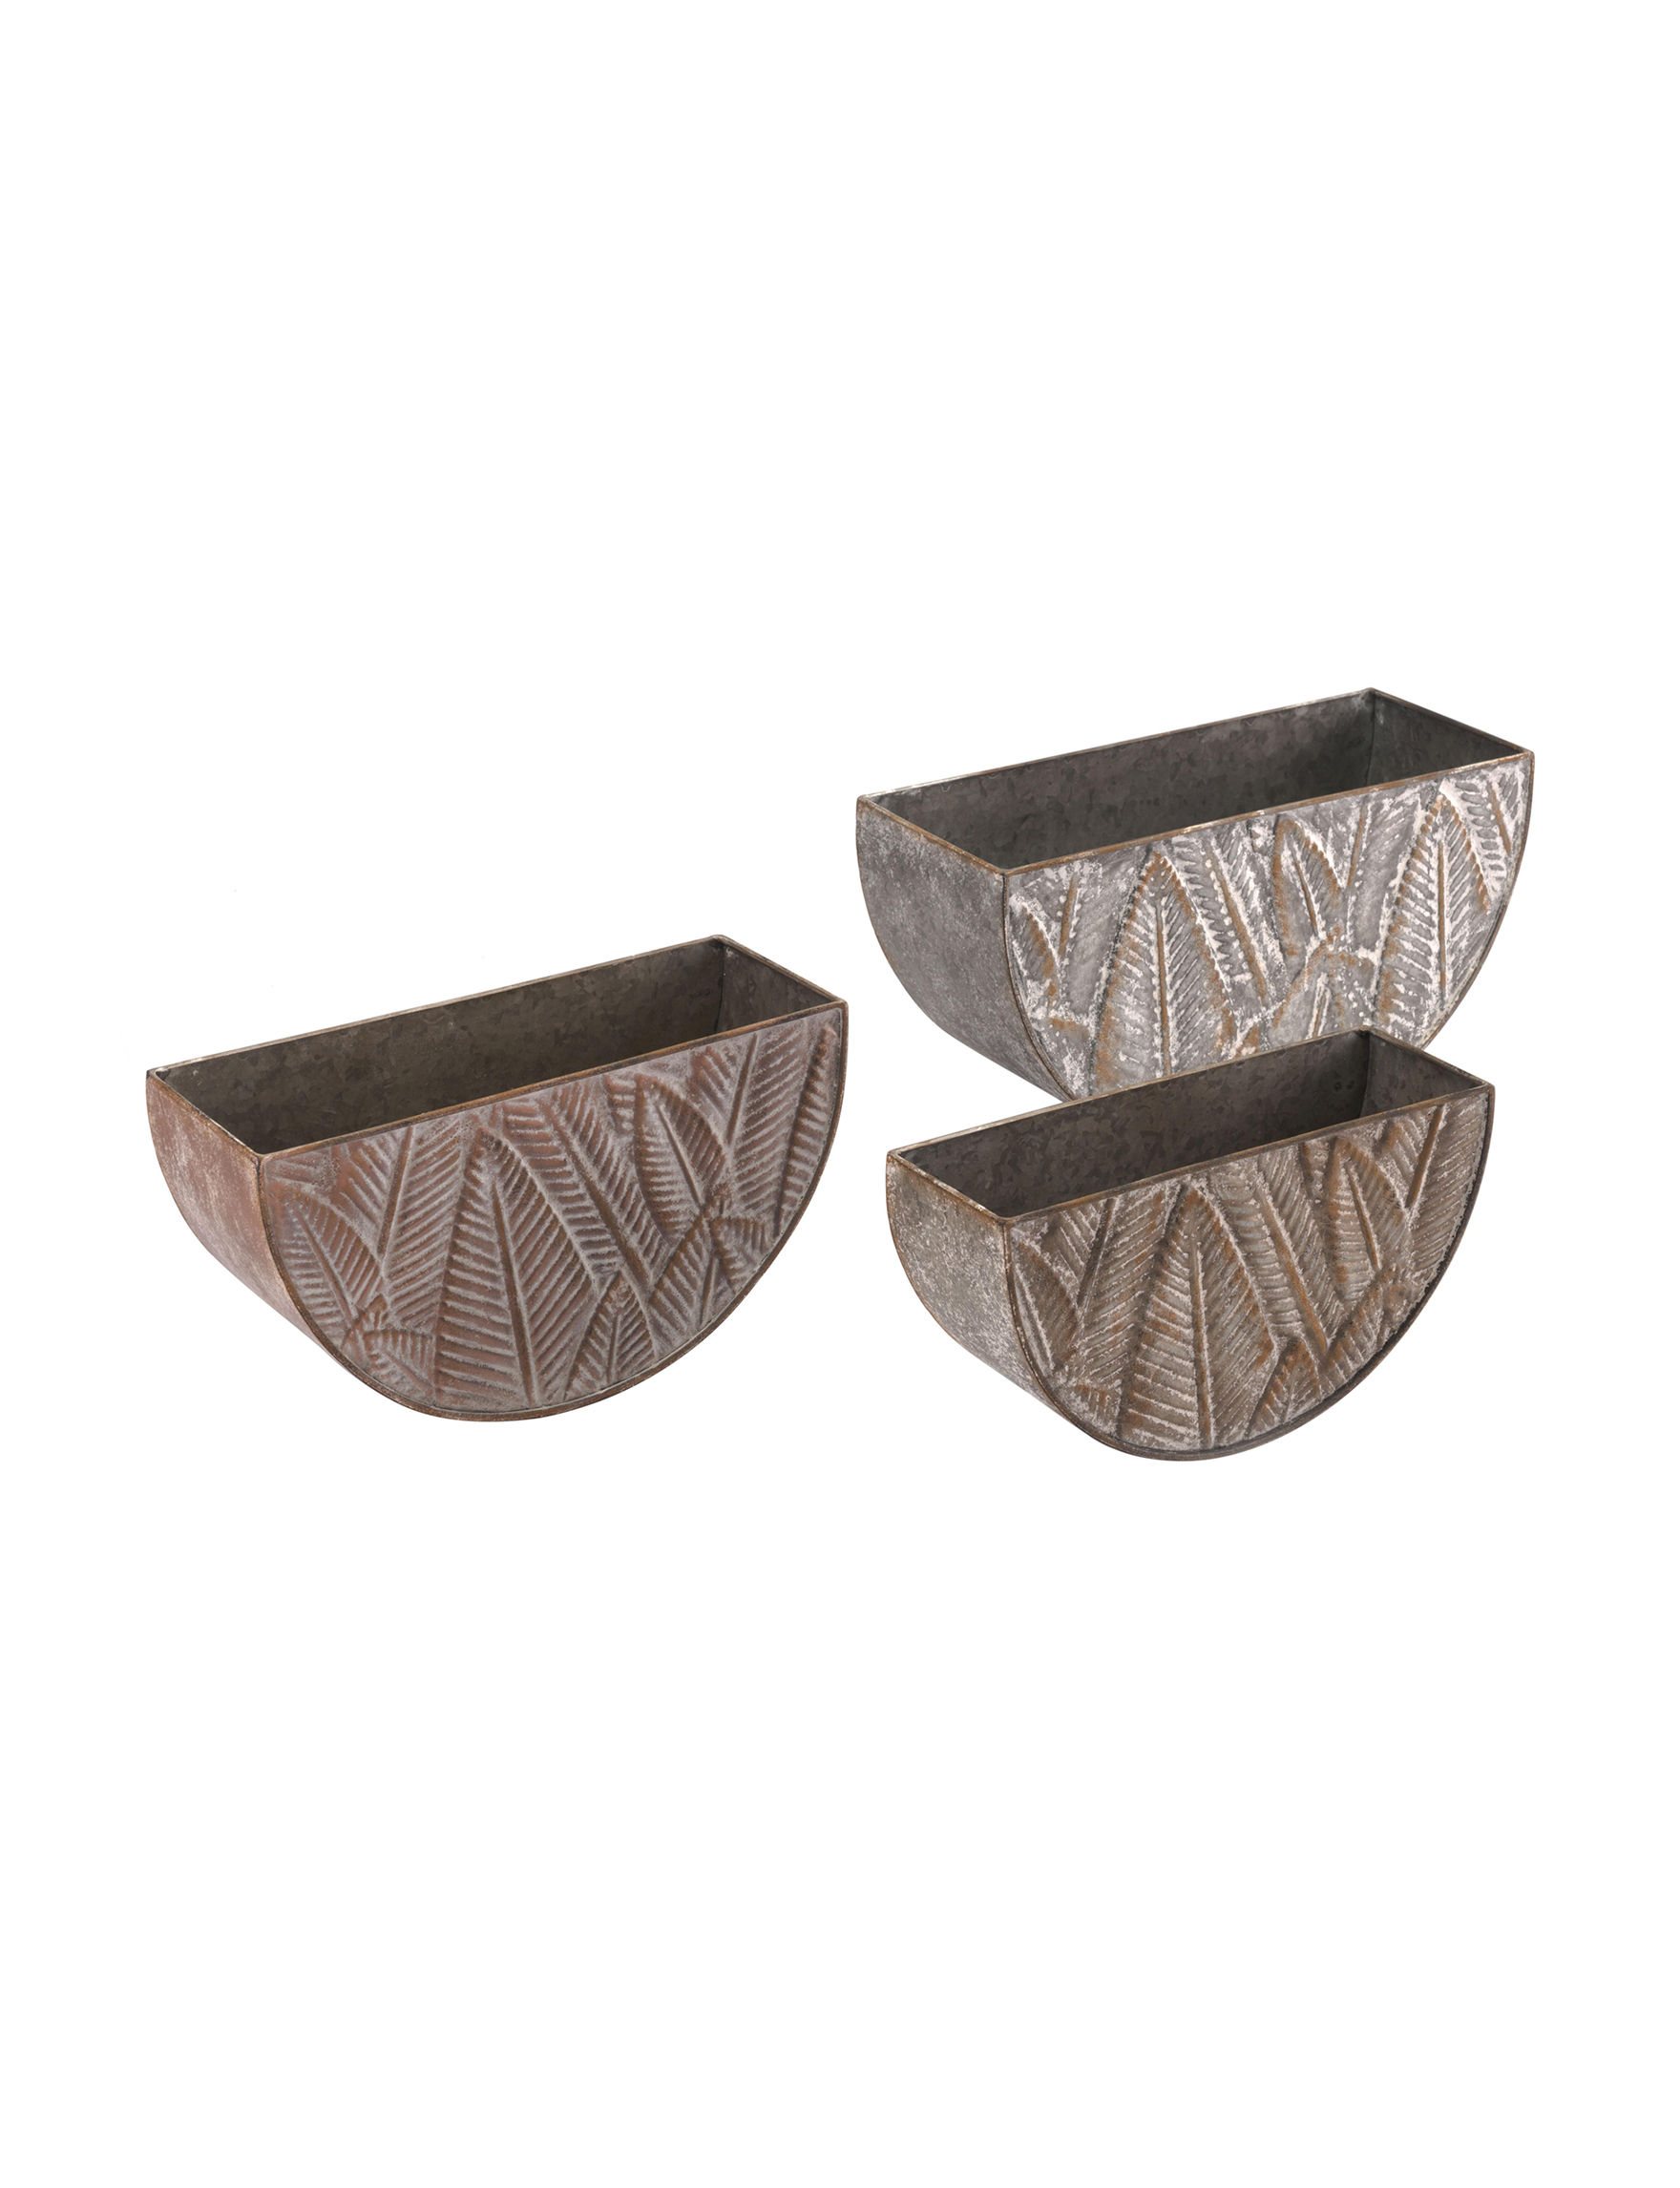 Zuo Modern  Decorative Objects Garden Decor & Planters Home Accents Outdoor Decor